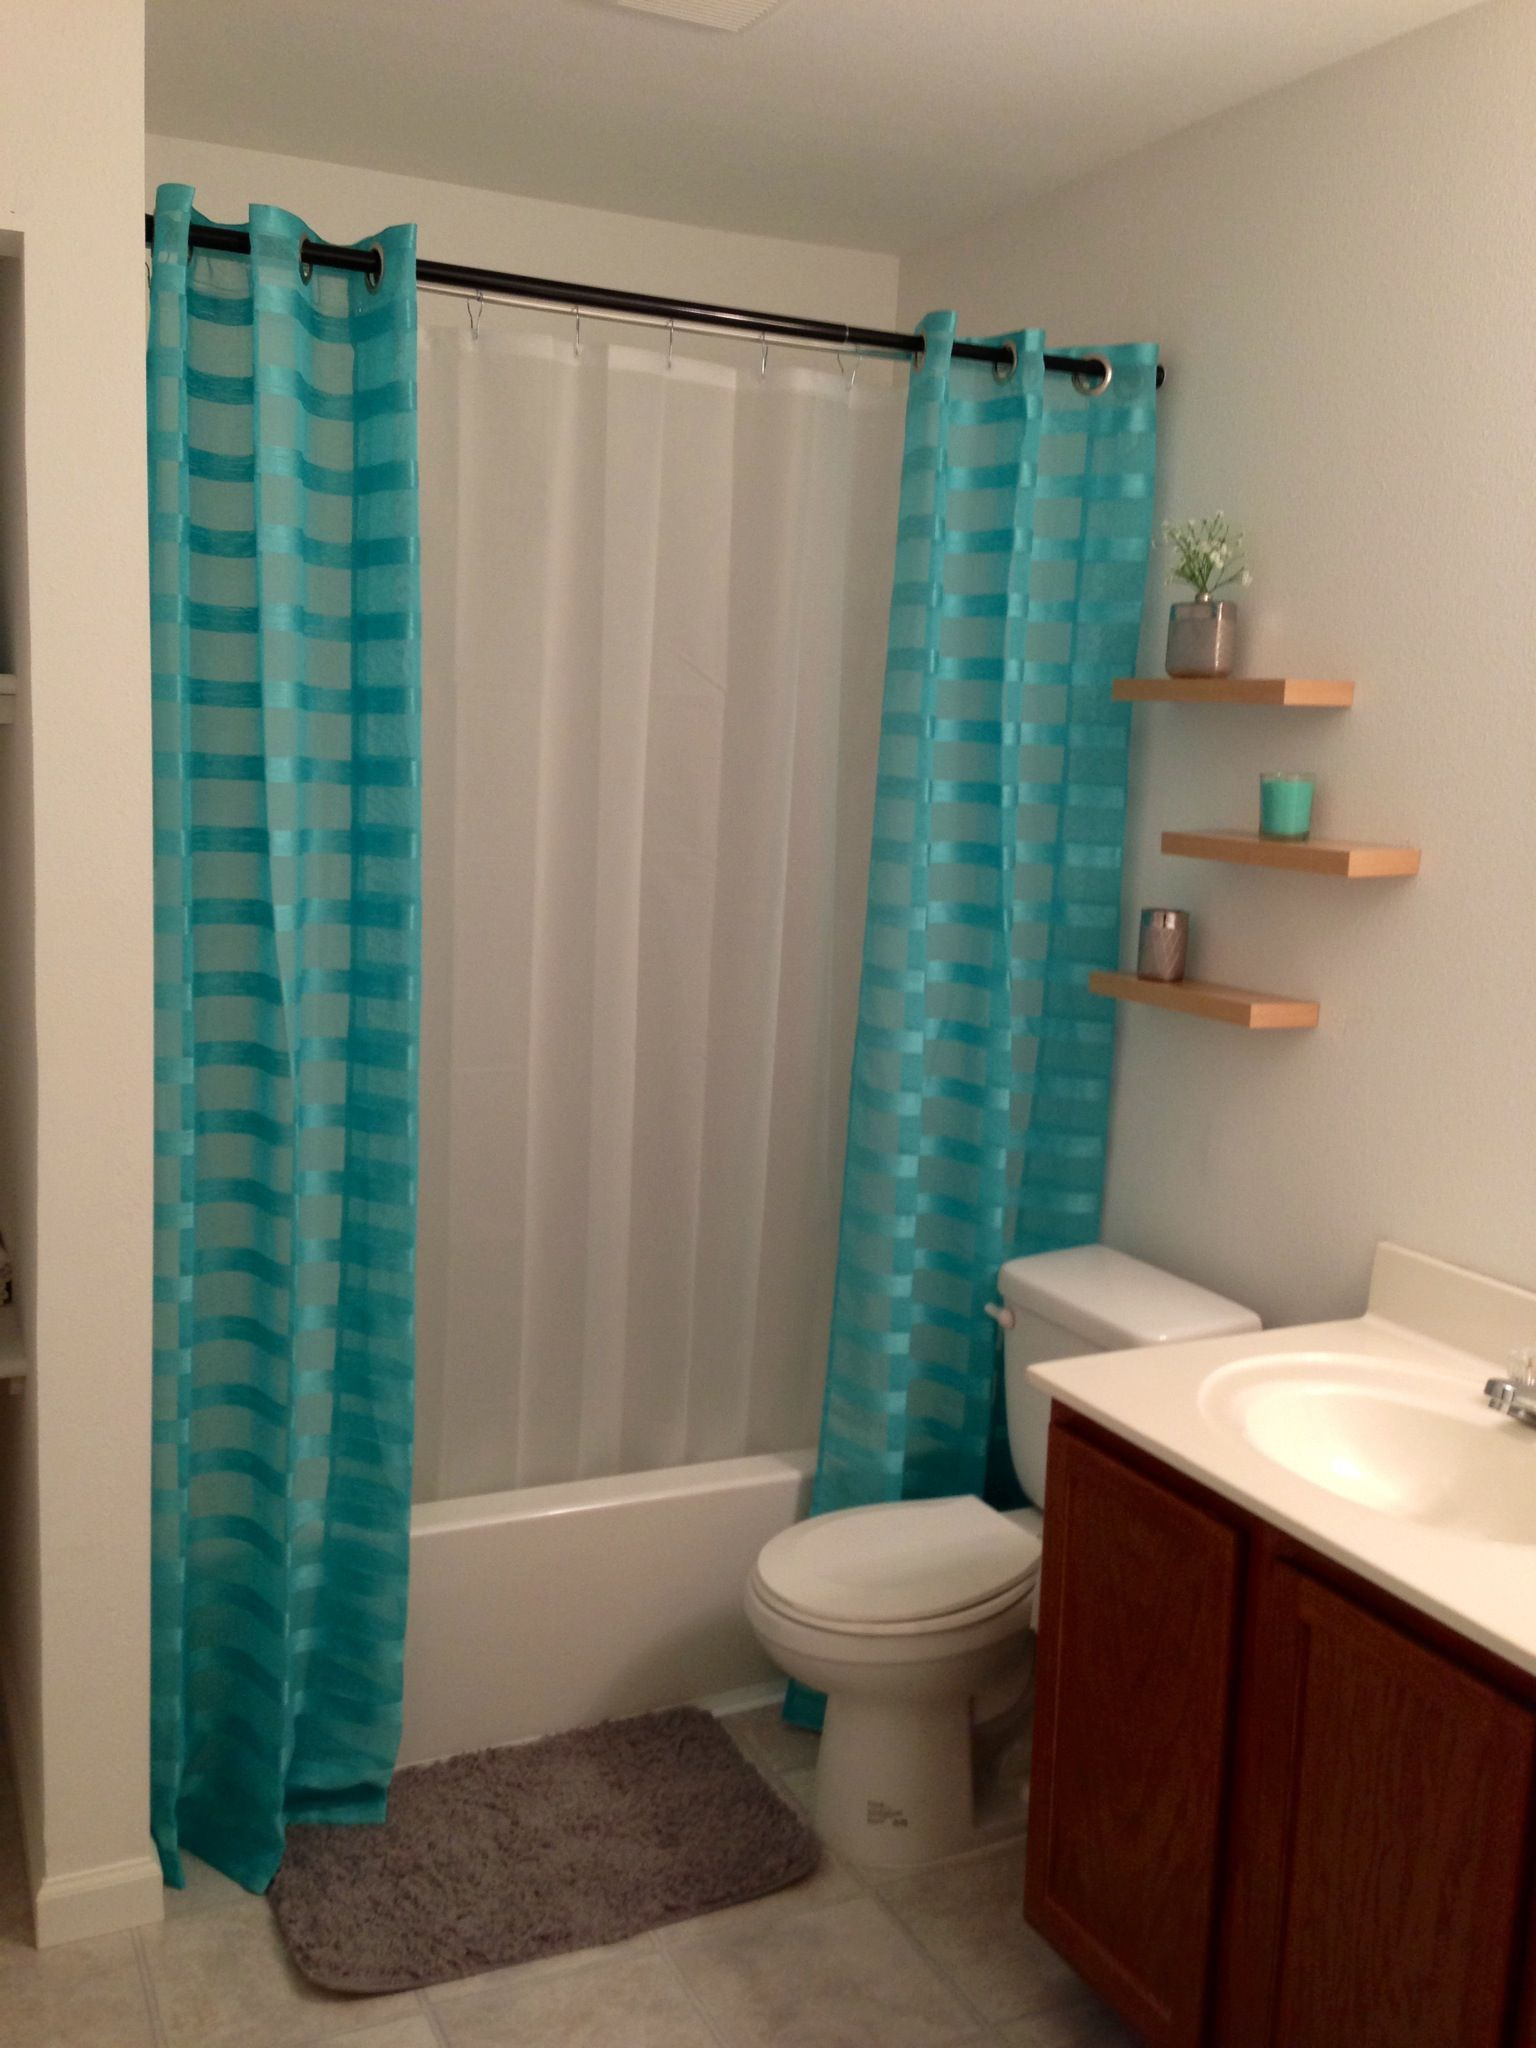 Cut Shower Curtain In Half And Sew So Its On Both Sides Or Buy Panels Looks Much Nicer This Way Would Need A Double Rod